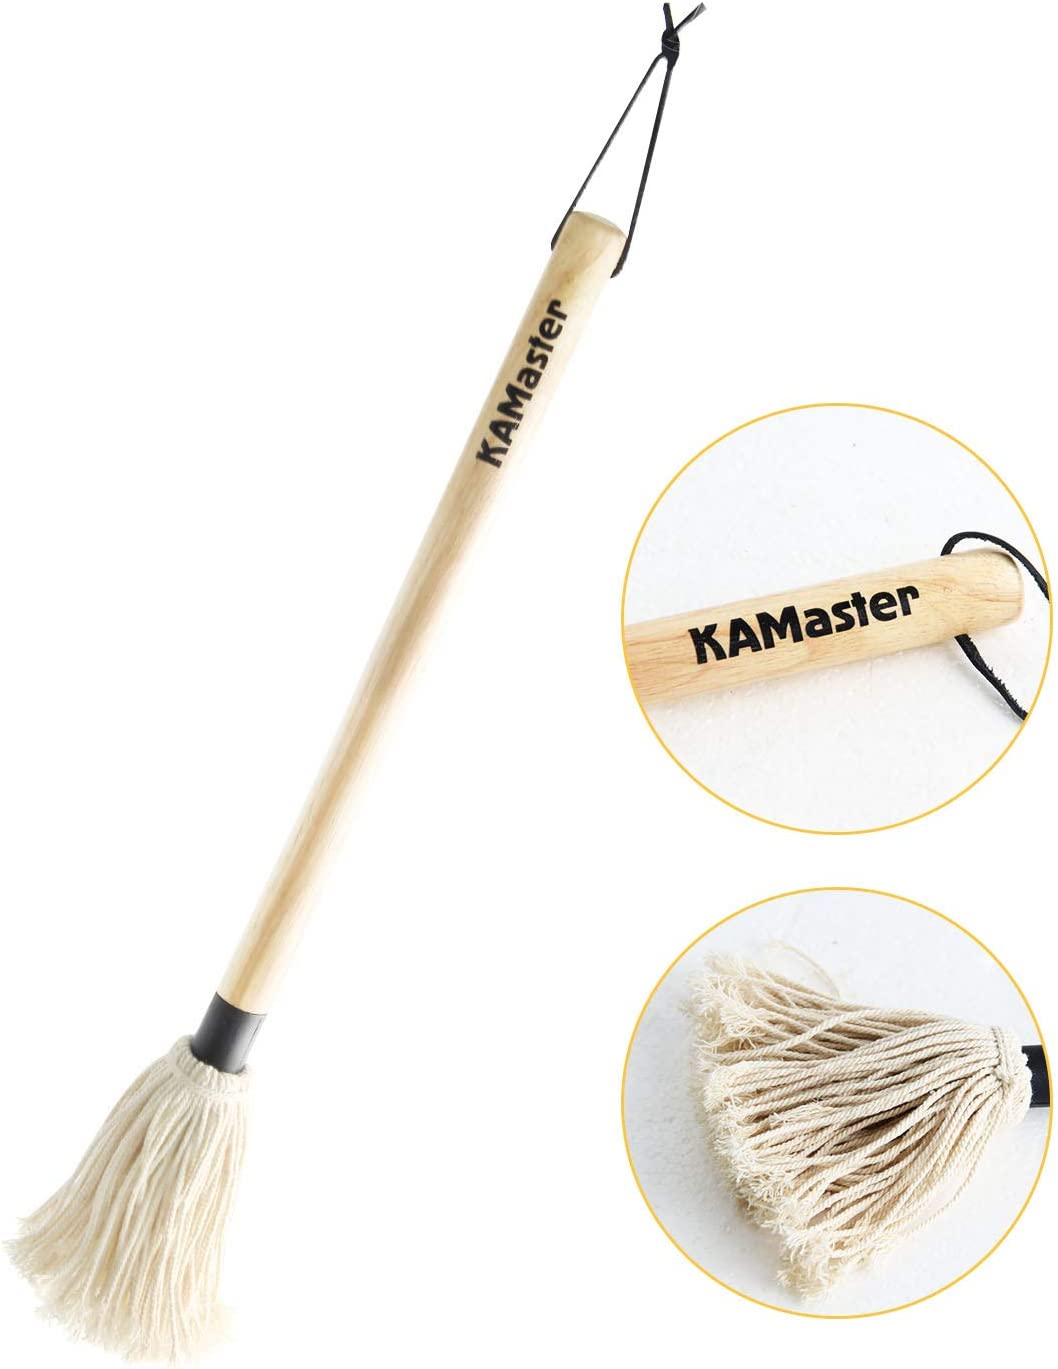 KAMaster 18 Inch Grill Basting Mop Wooden Long Handle Perfect for Roasting,Grilling,Smoking Big Green Egg Accessories Food Brush Mop for BBQ Grilling Smoking Steak